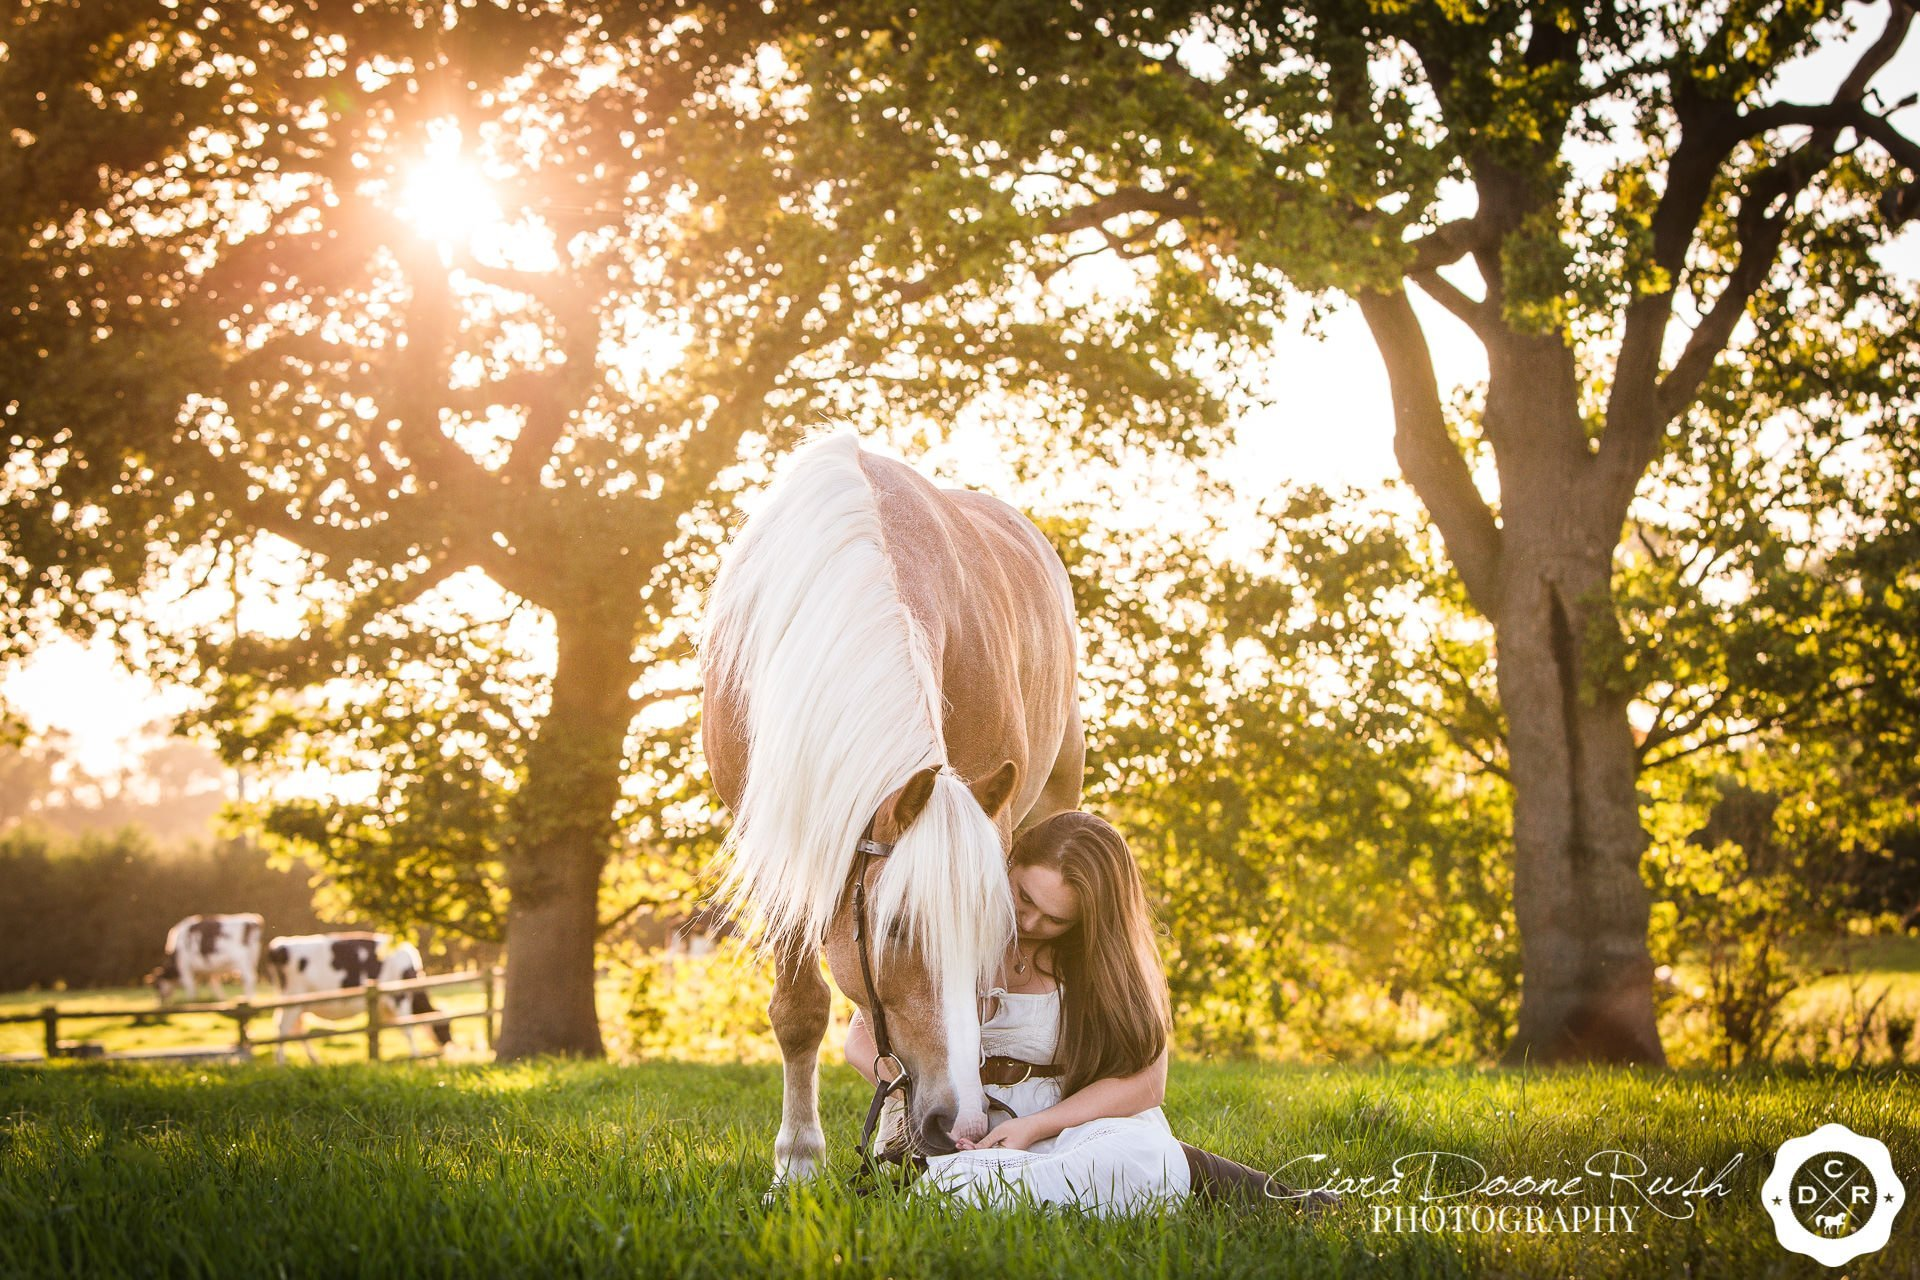 A girl and her horse in the evening sun on a horse and rider photo shoot